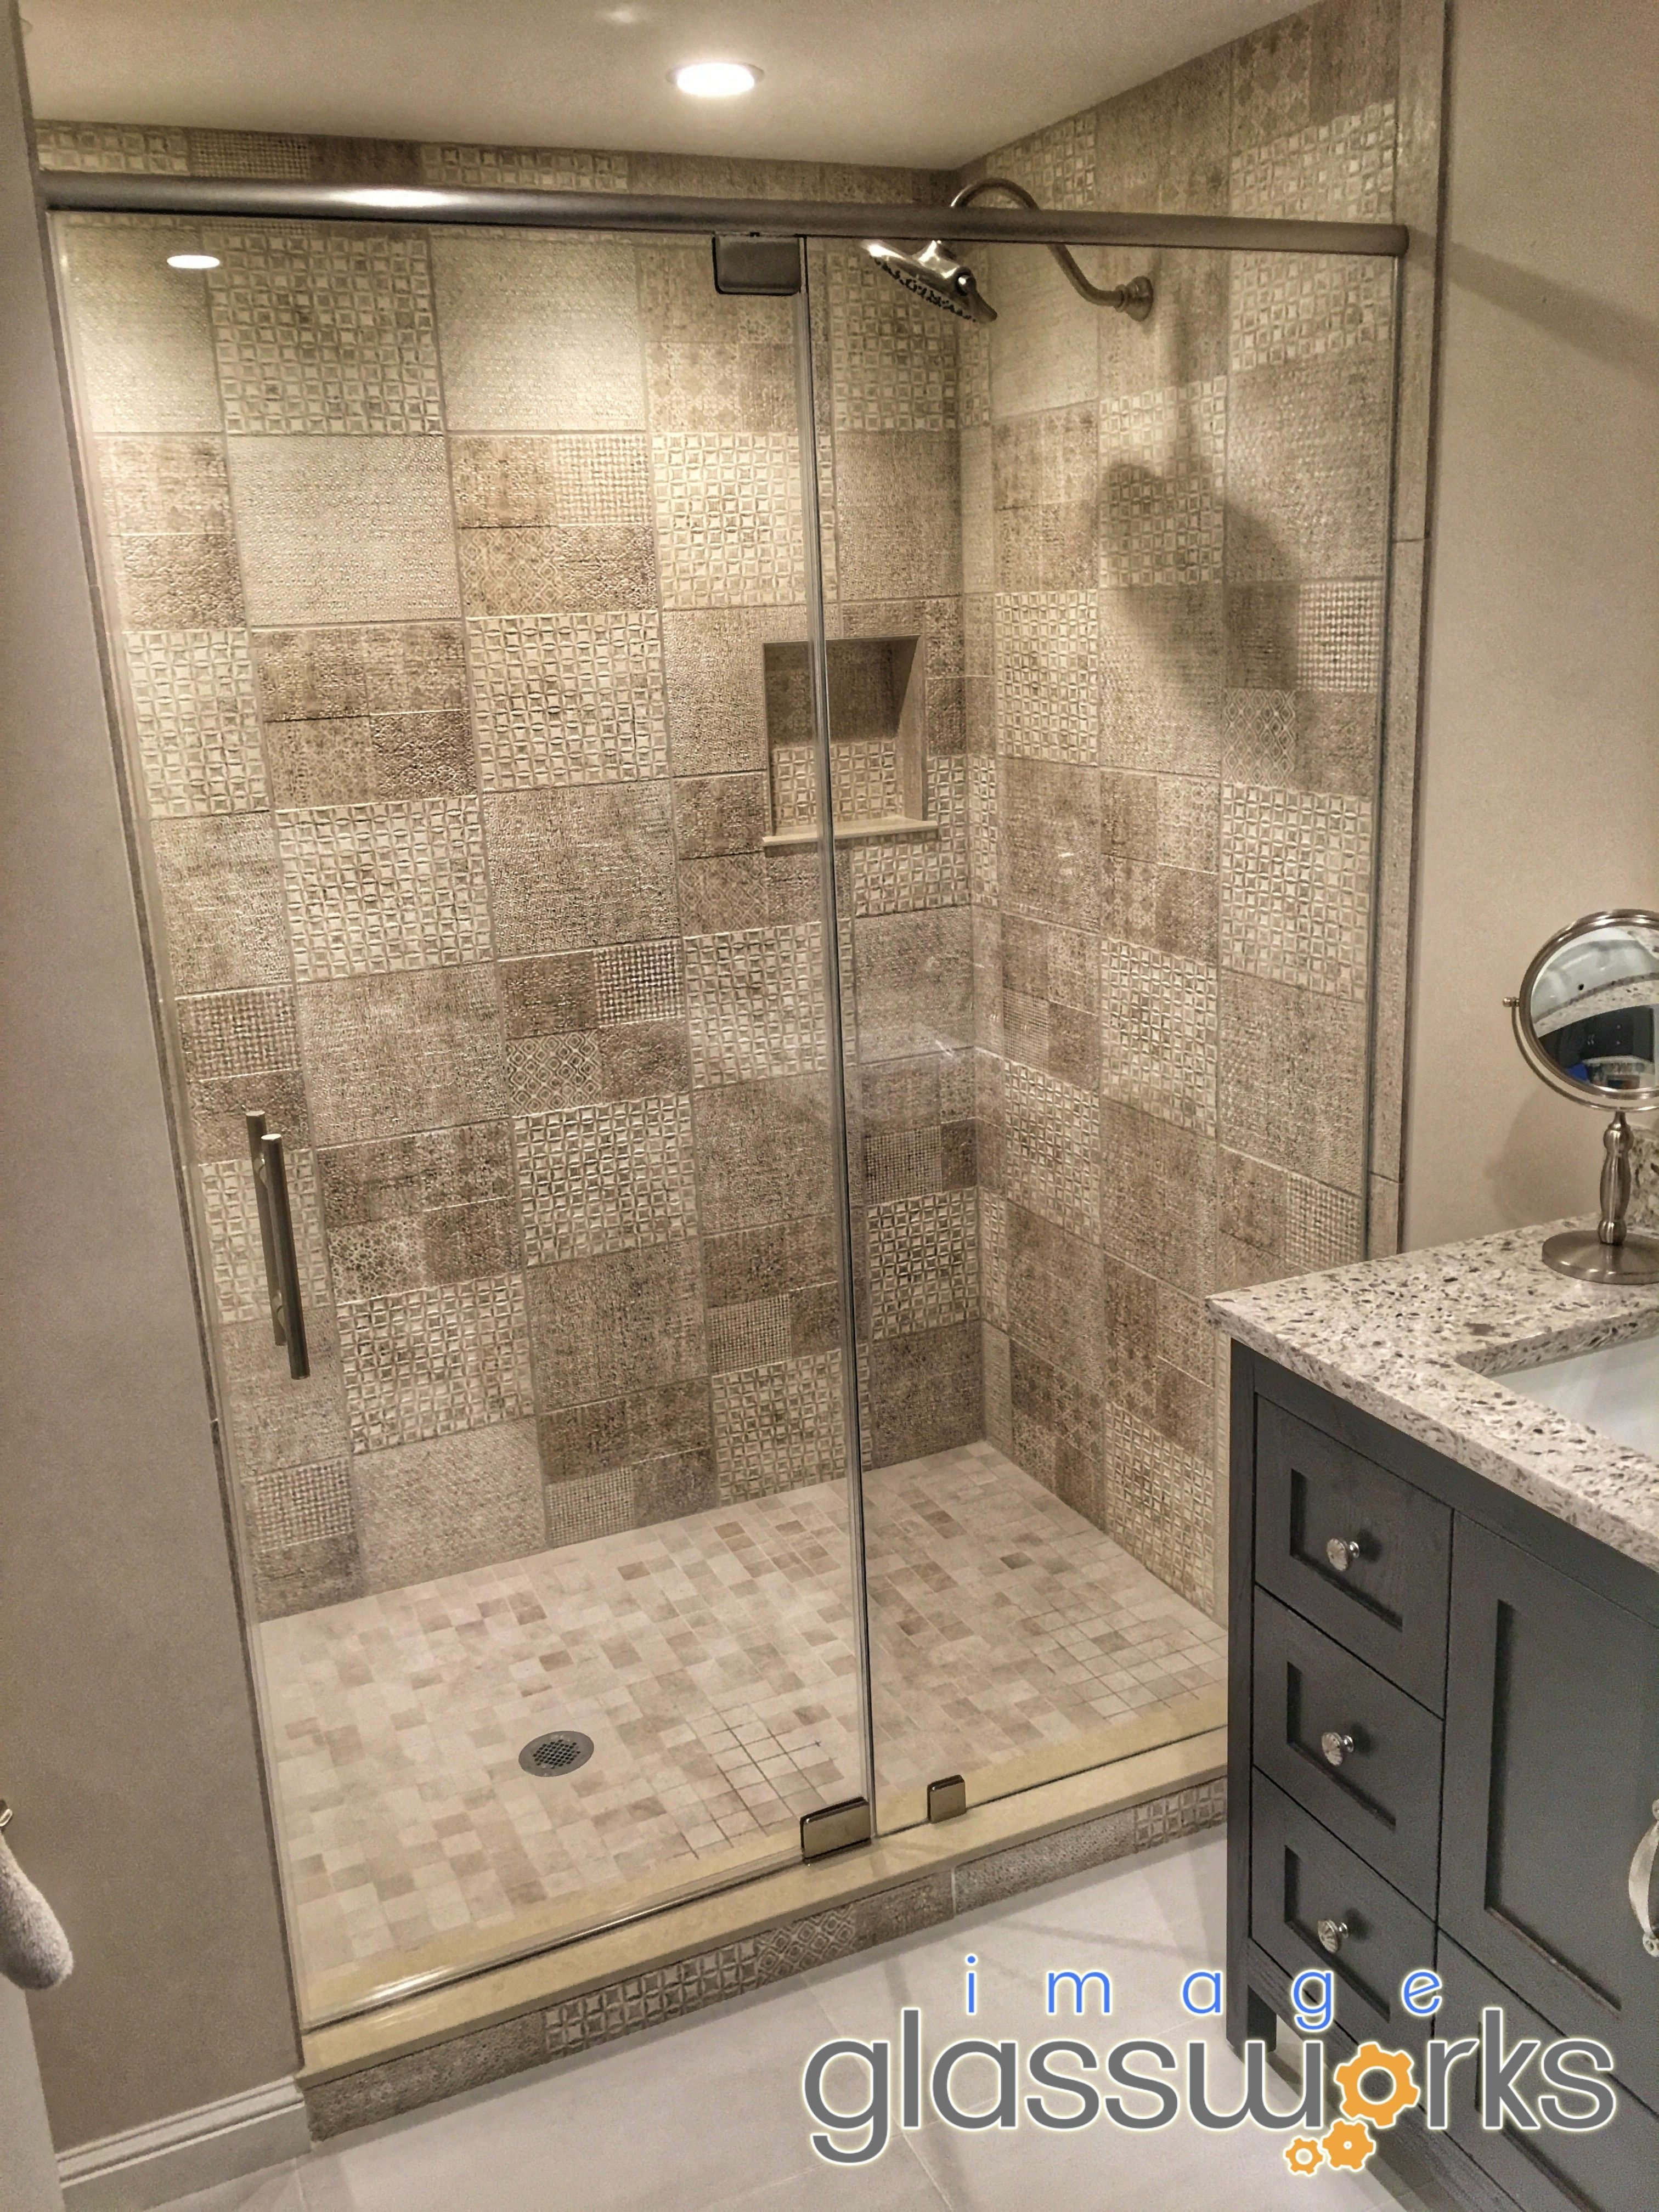 Incredible Low Iron Glass Shower Enclosure Installed With A Header